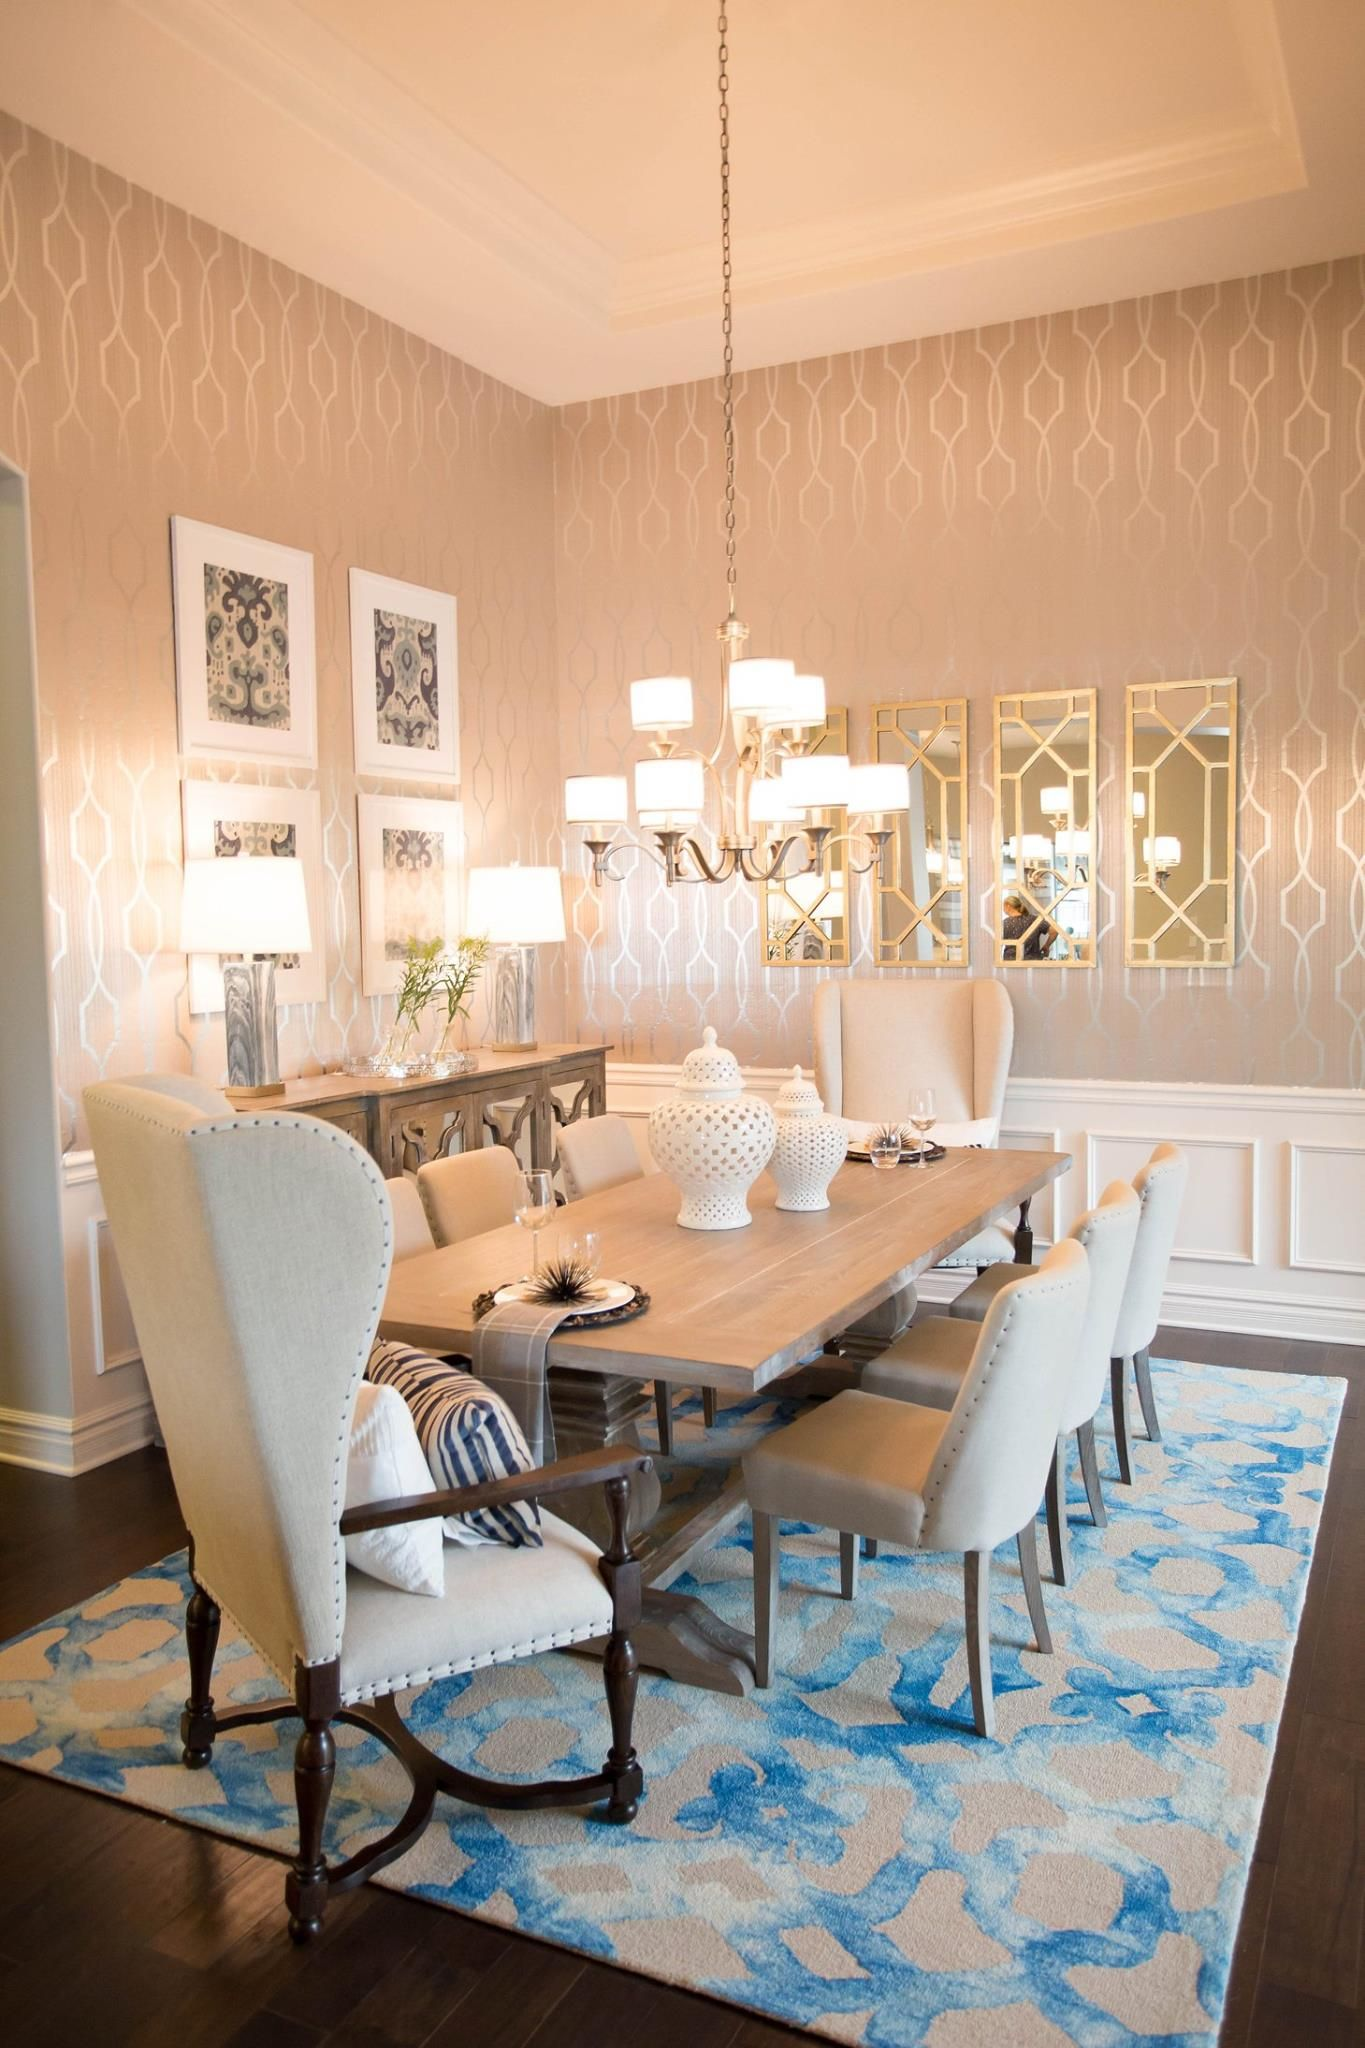 Romantic Dining Room Romance Glam Traditional Transitional Goals Inspo